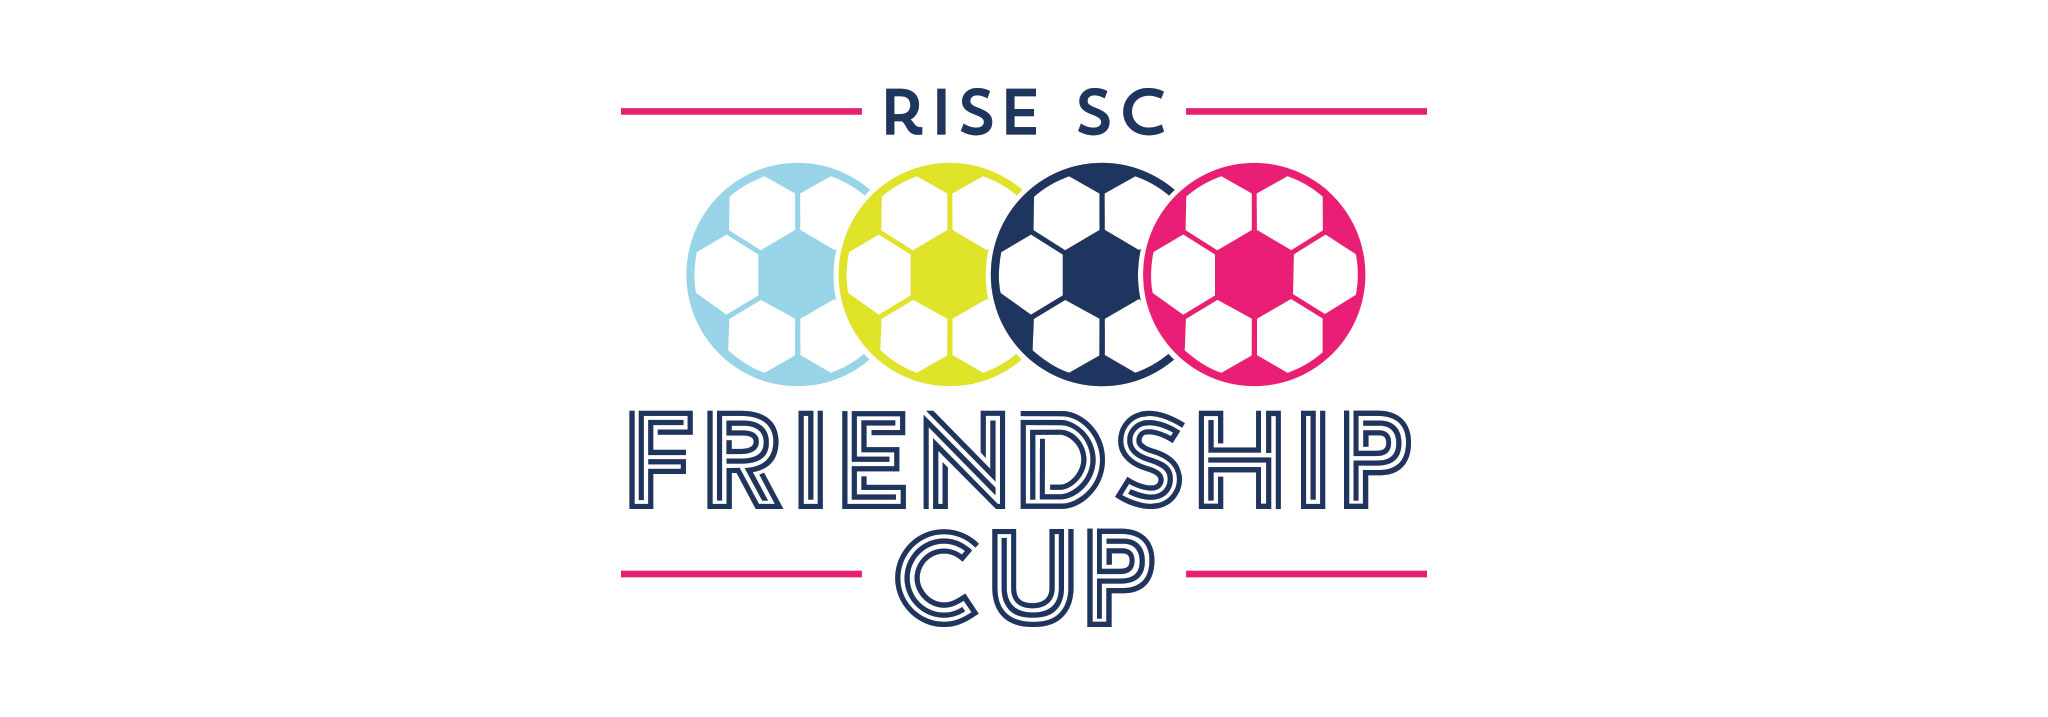 Friendship Cup 2017 Results